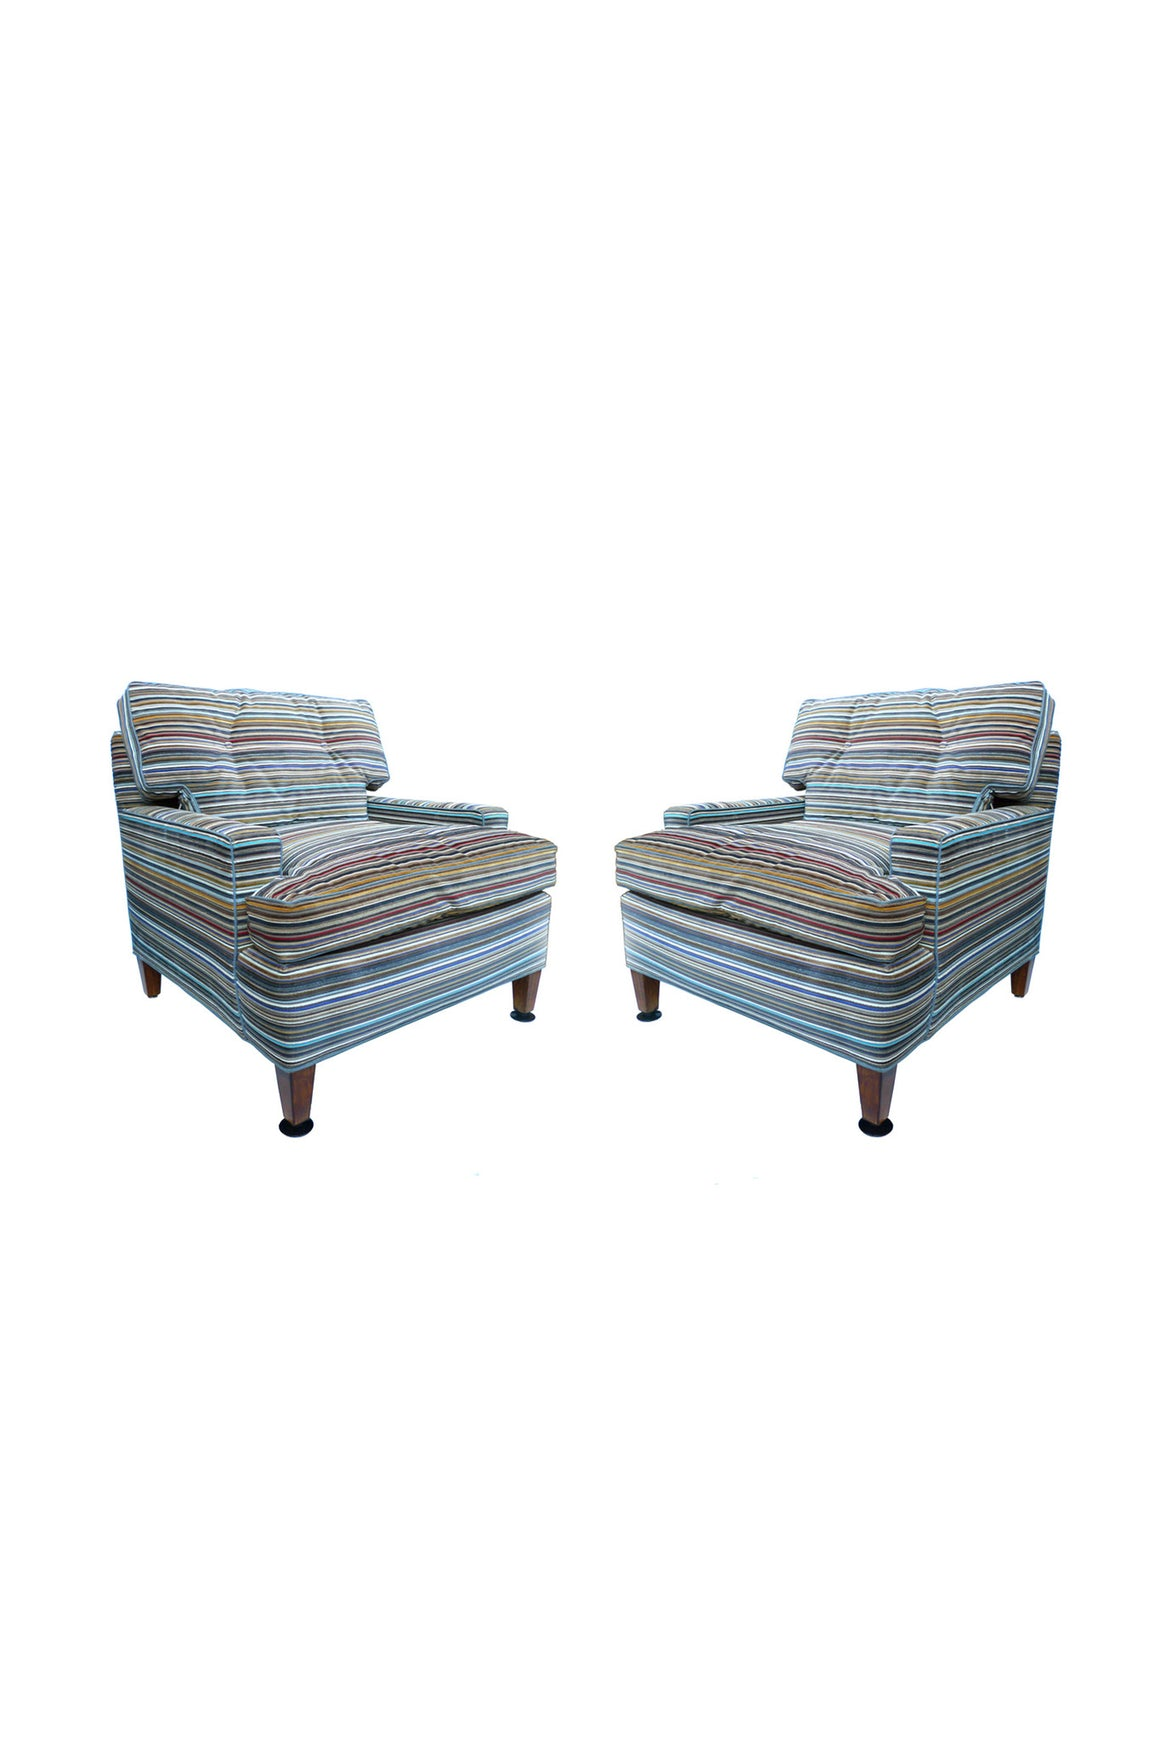 Billy Haines-Style Midcentury Club Chairs - a Pair